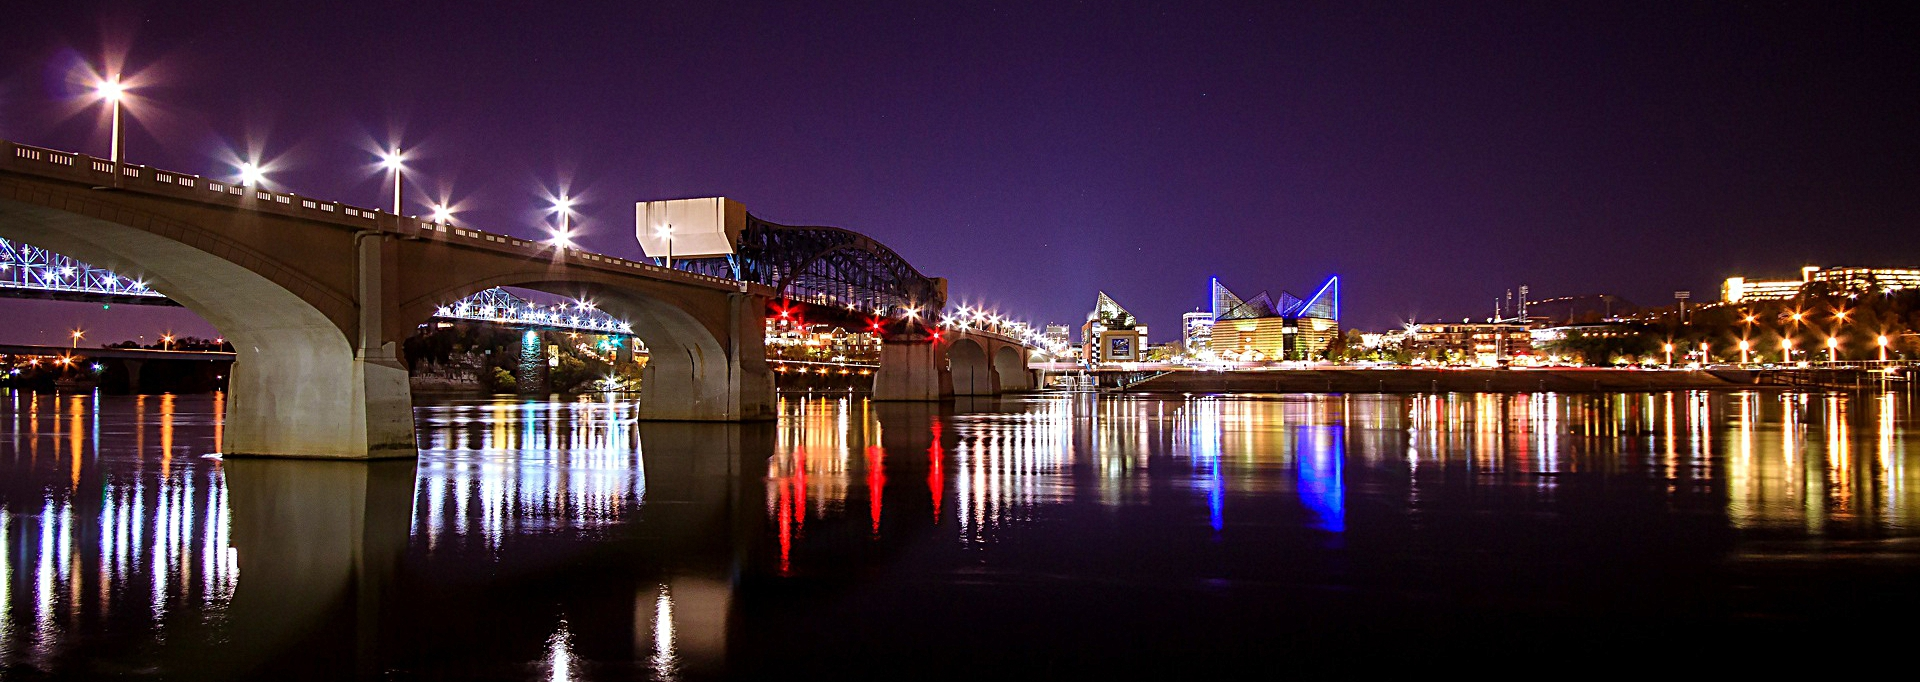 Stay and play chattanooga vacation rentals local information chattanooga is filled with things to do from family activities to downtown night life a city nestled between beautiful mountains and rivers and filled with publicscrutiny Gallery